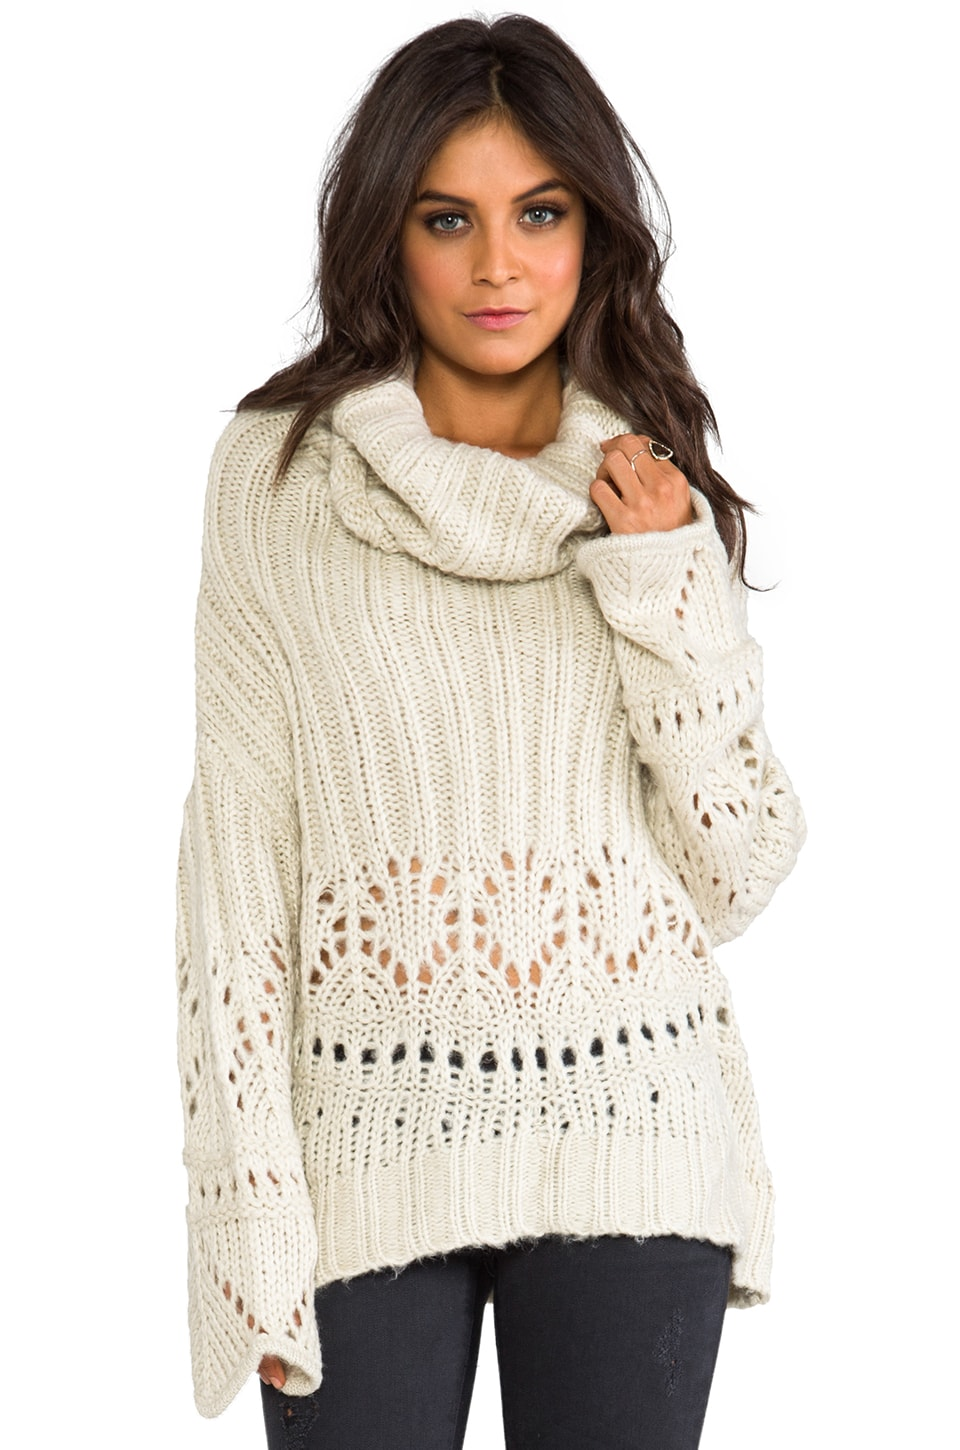 Spell & The Gypsy Collective La Luna Cowl Neck Jumper in Sand